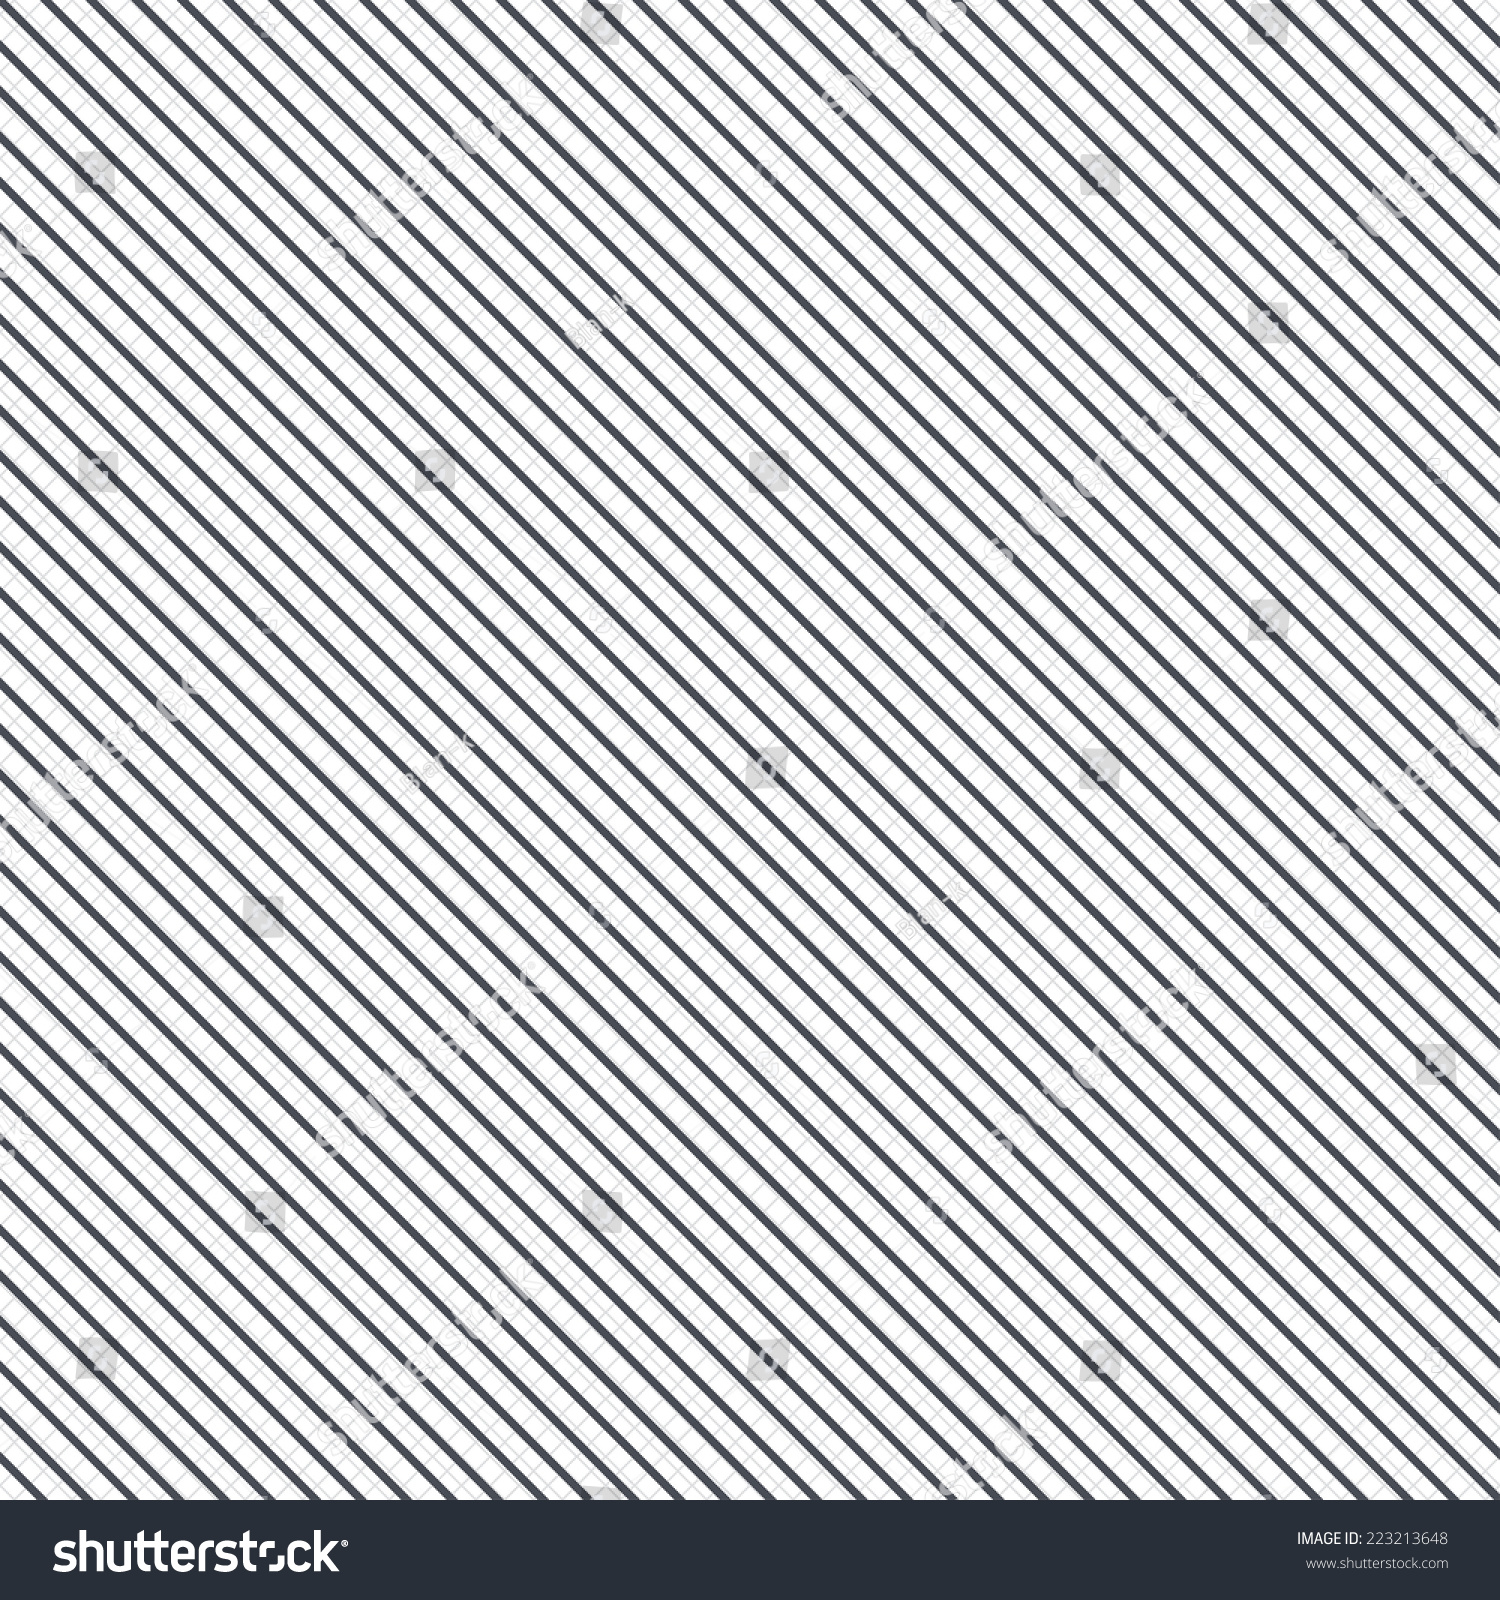 Line Texture Color : Diagonal lines pattern background abstract wallpaper stock